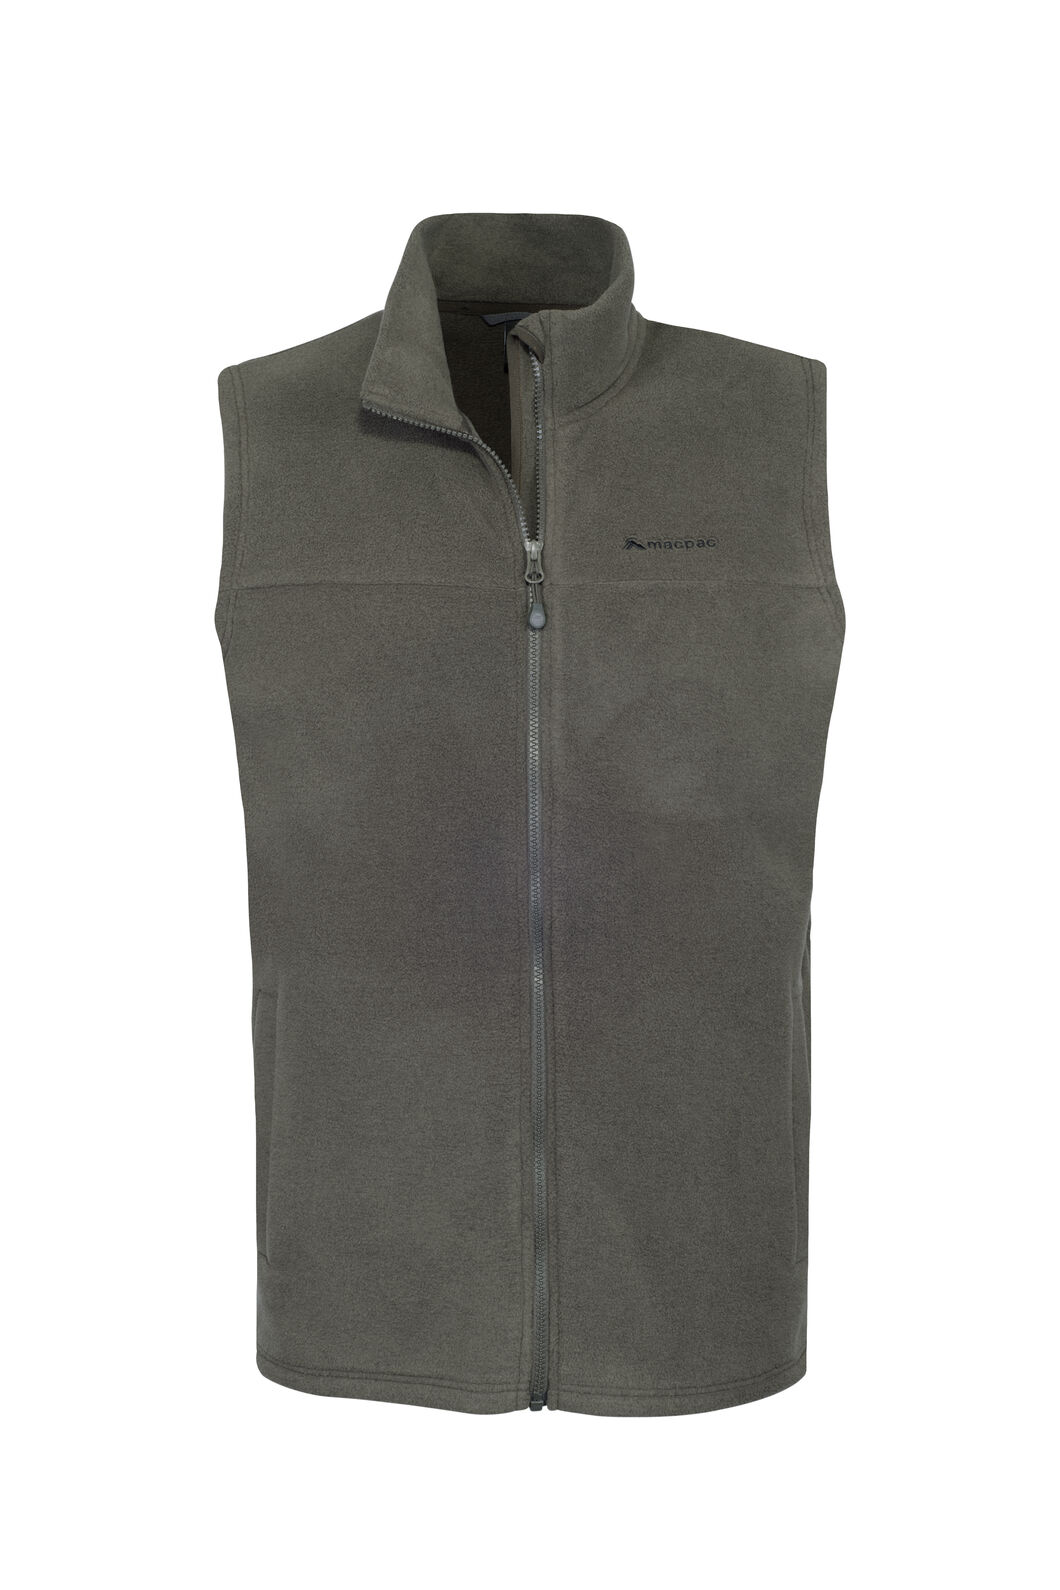 Macpac Waitomo Polartec® Fleece Vest — Men's, Black Olive, hi-res